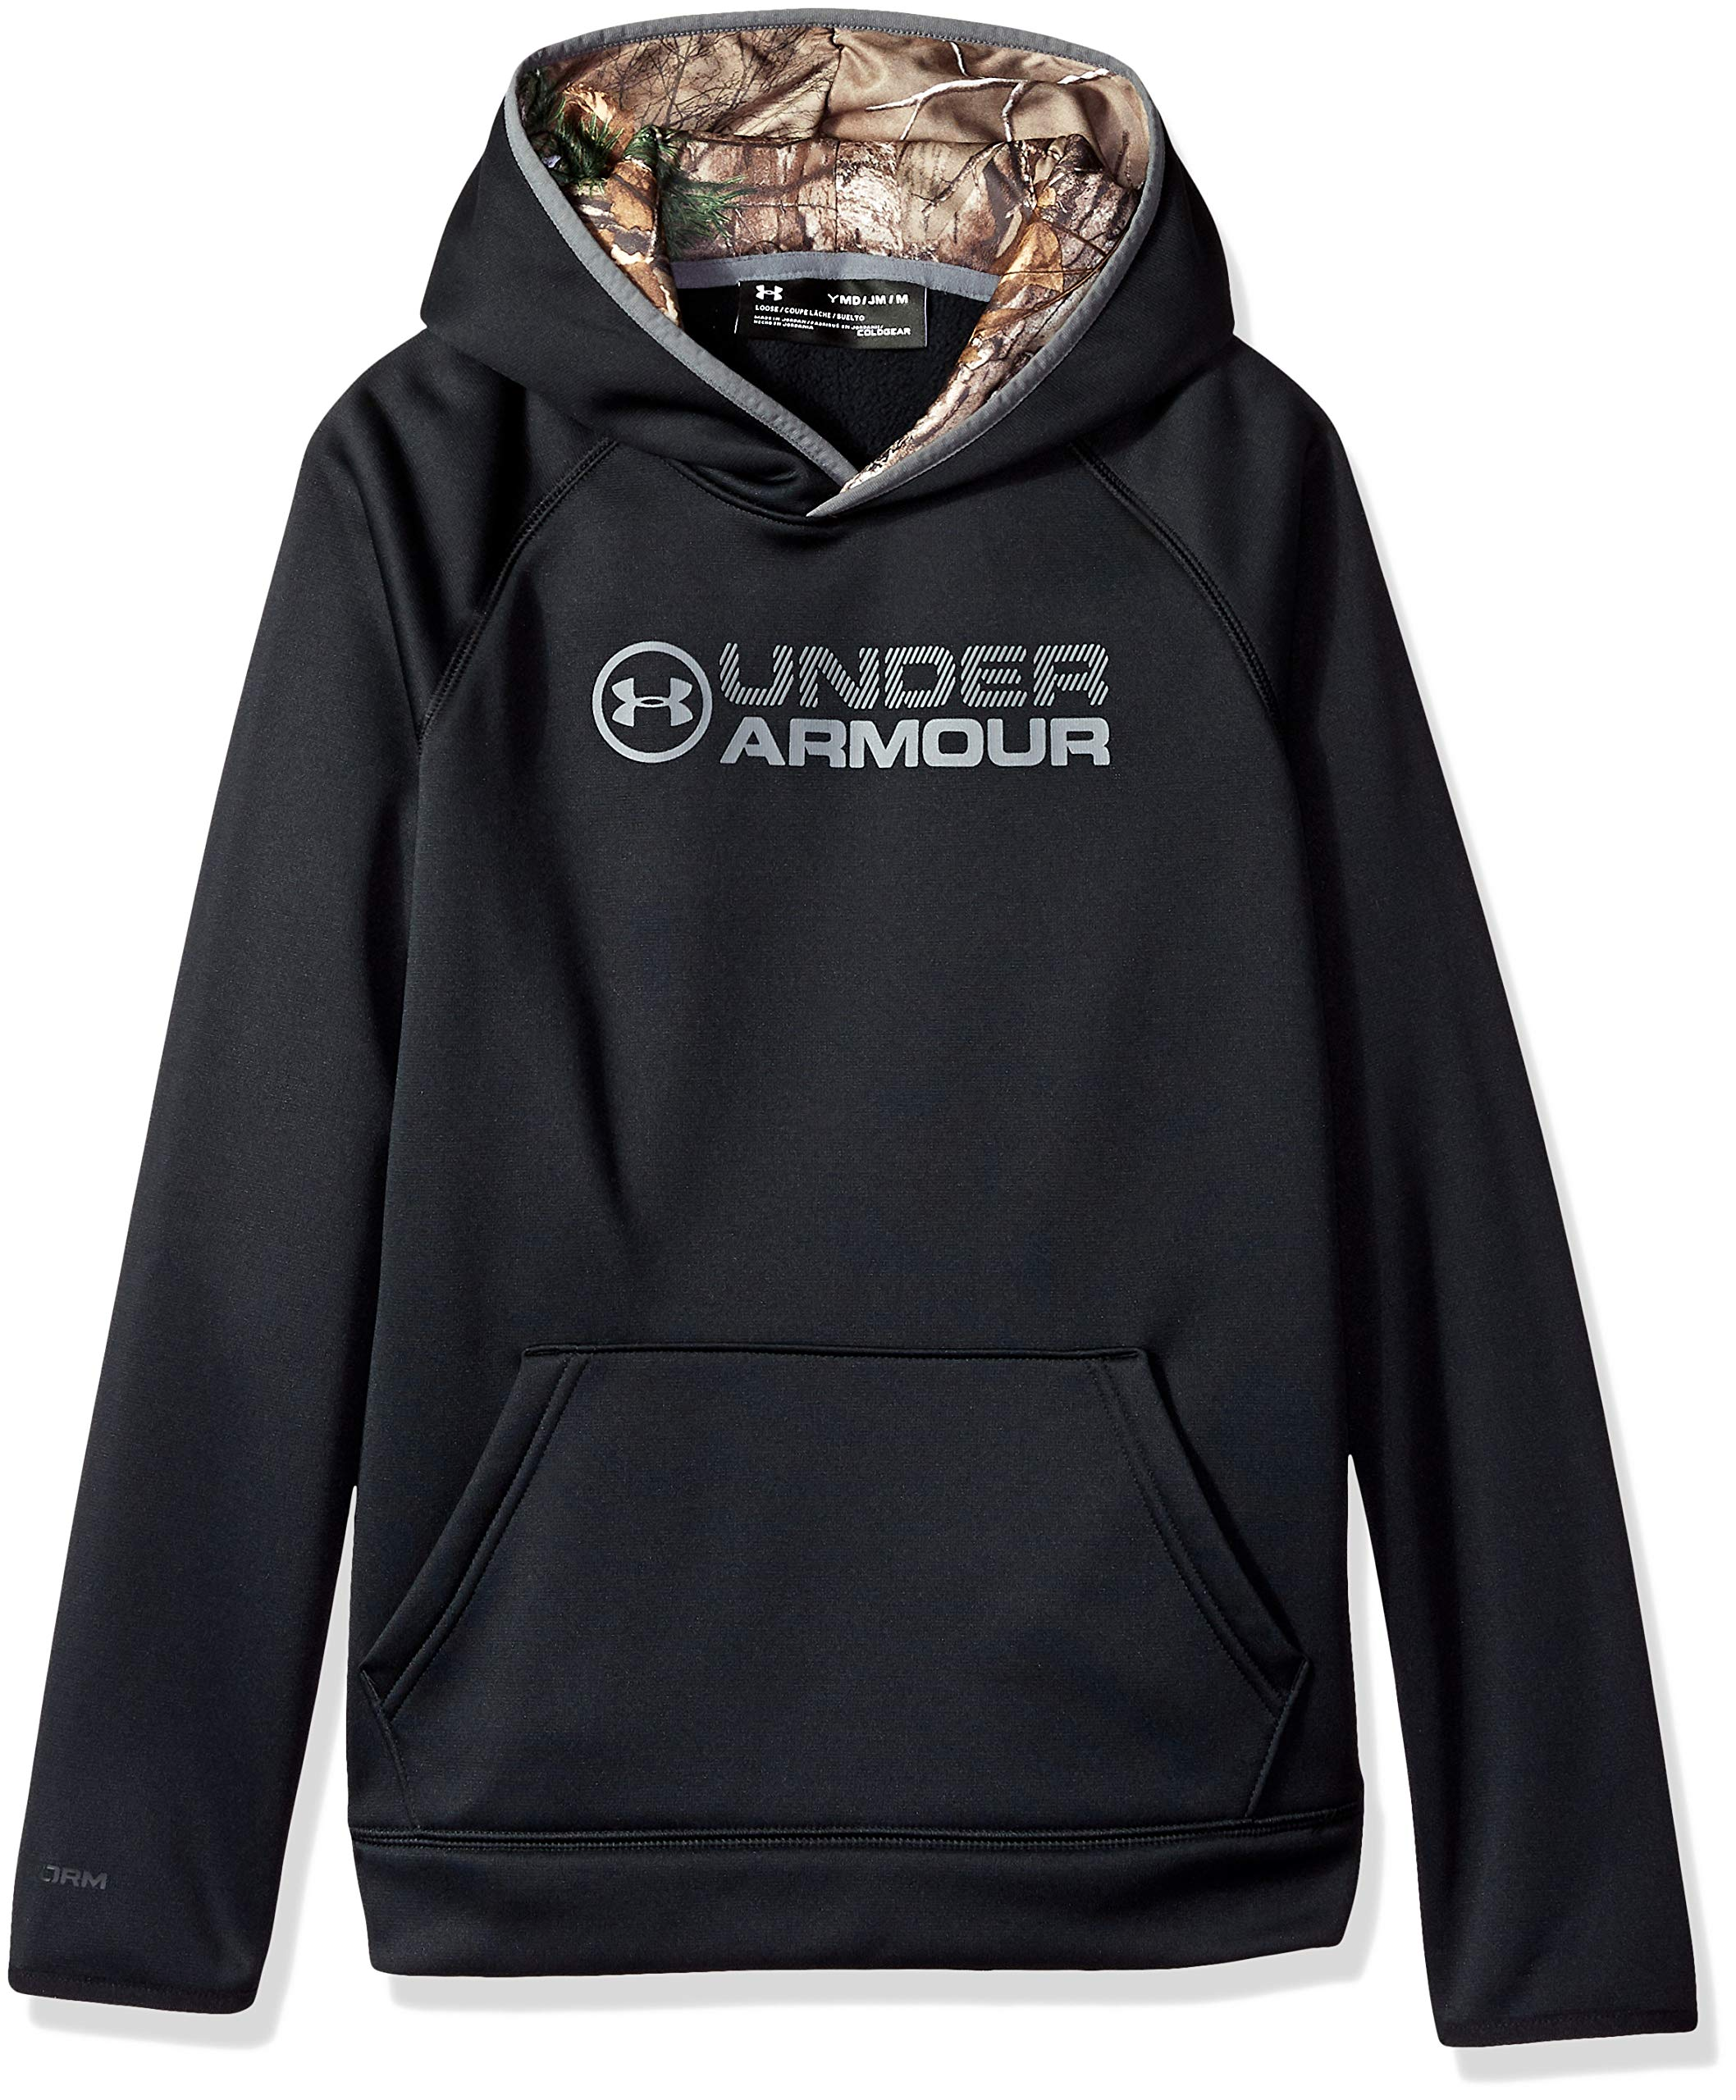 Under Armour Outerwear Boys Fleece Stacked Hoodie, Black/Graphite, Small by Under Armour